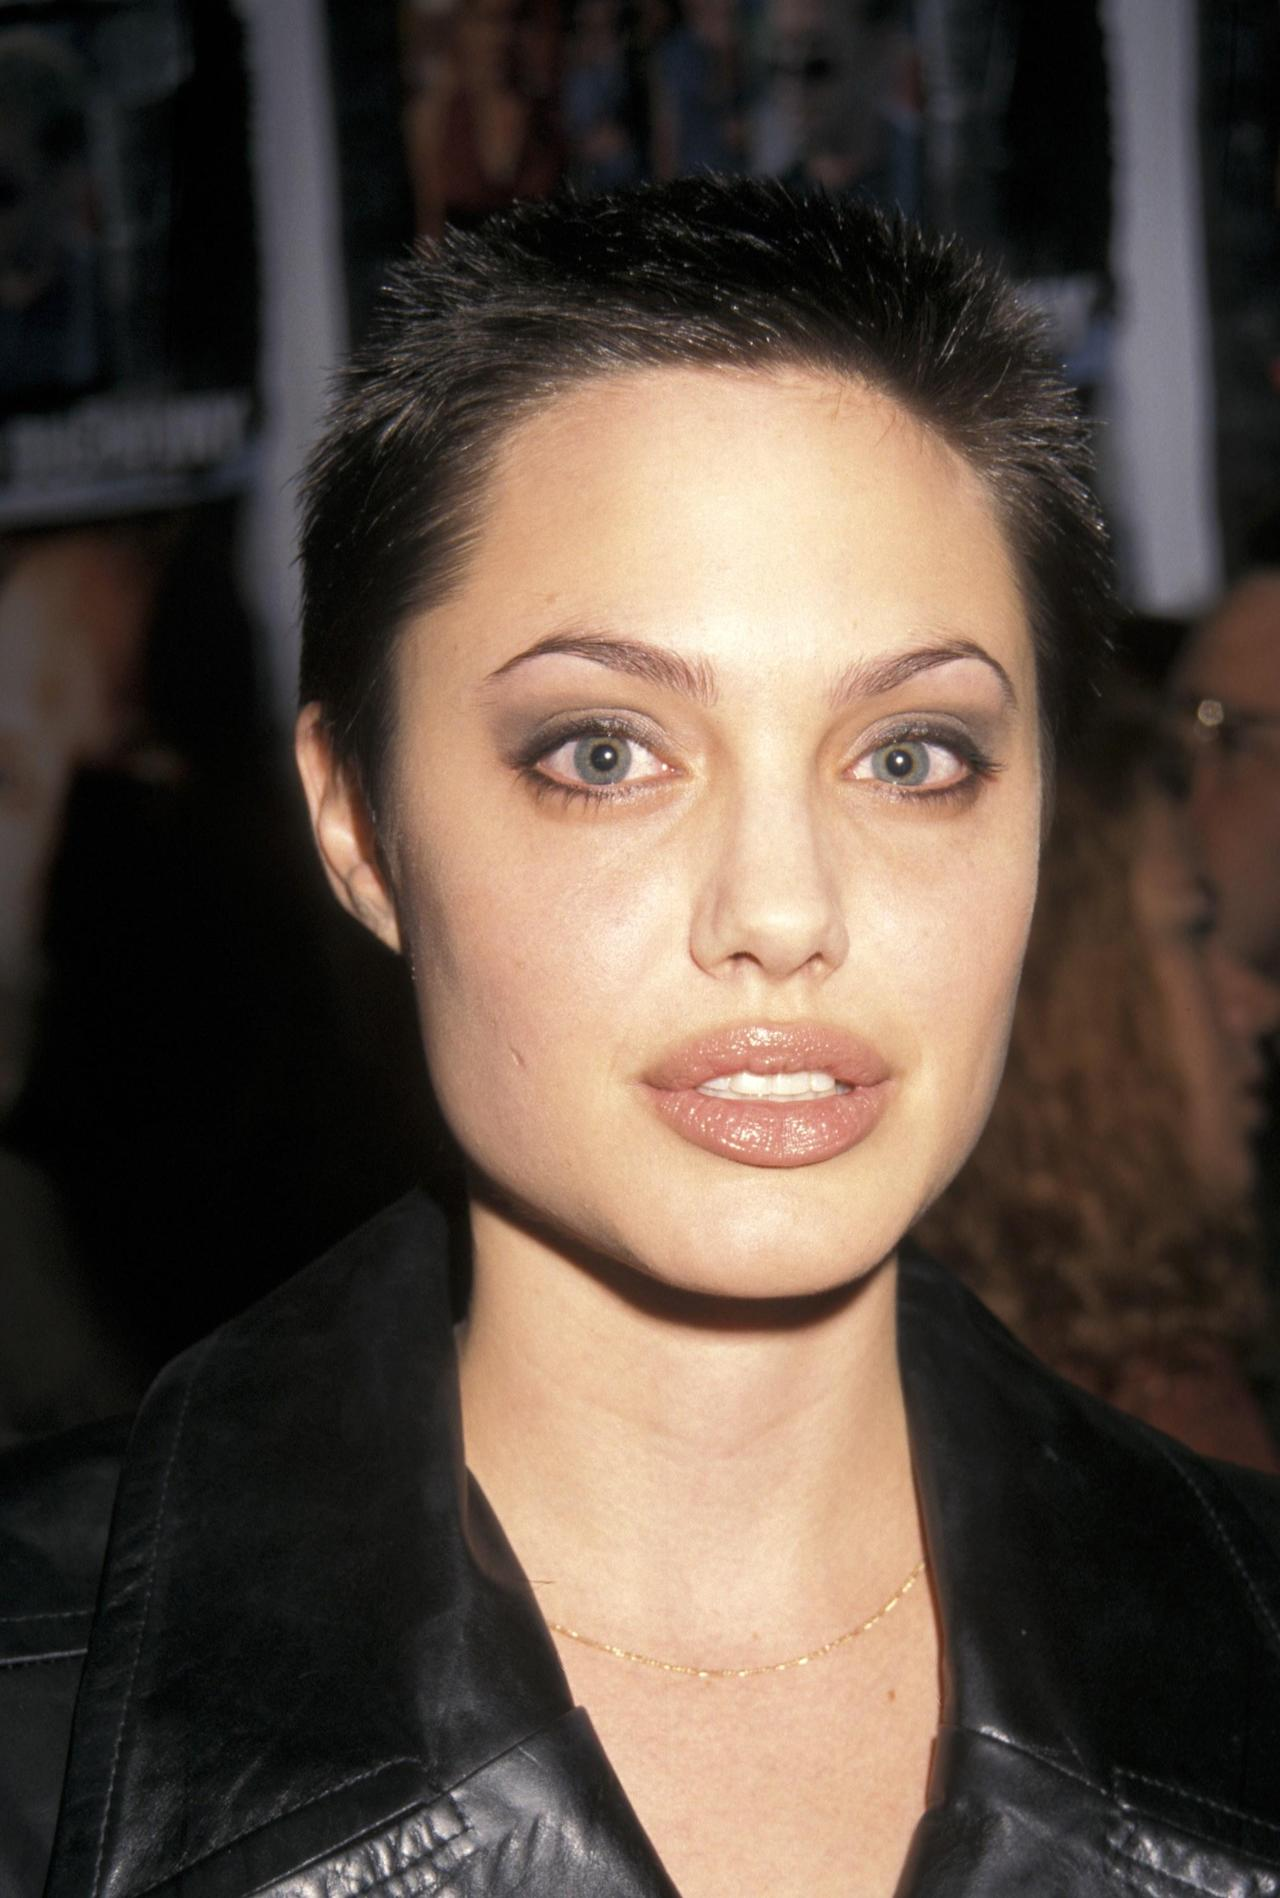 Angelina Jolie Beyond Borders see angelina jolie's beauty transformation through the years